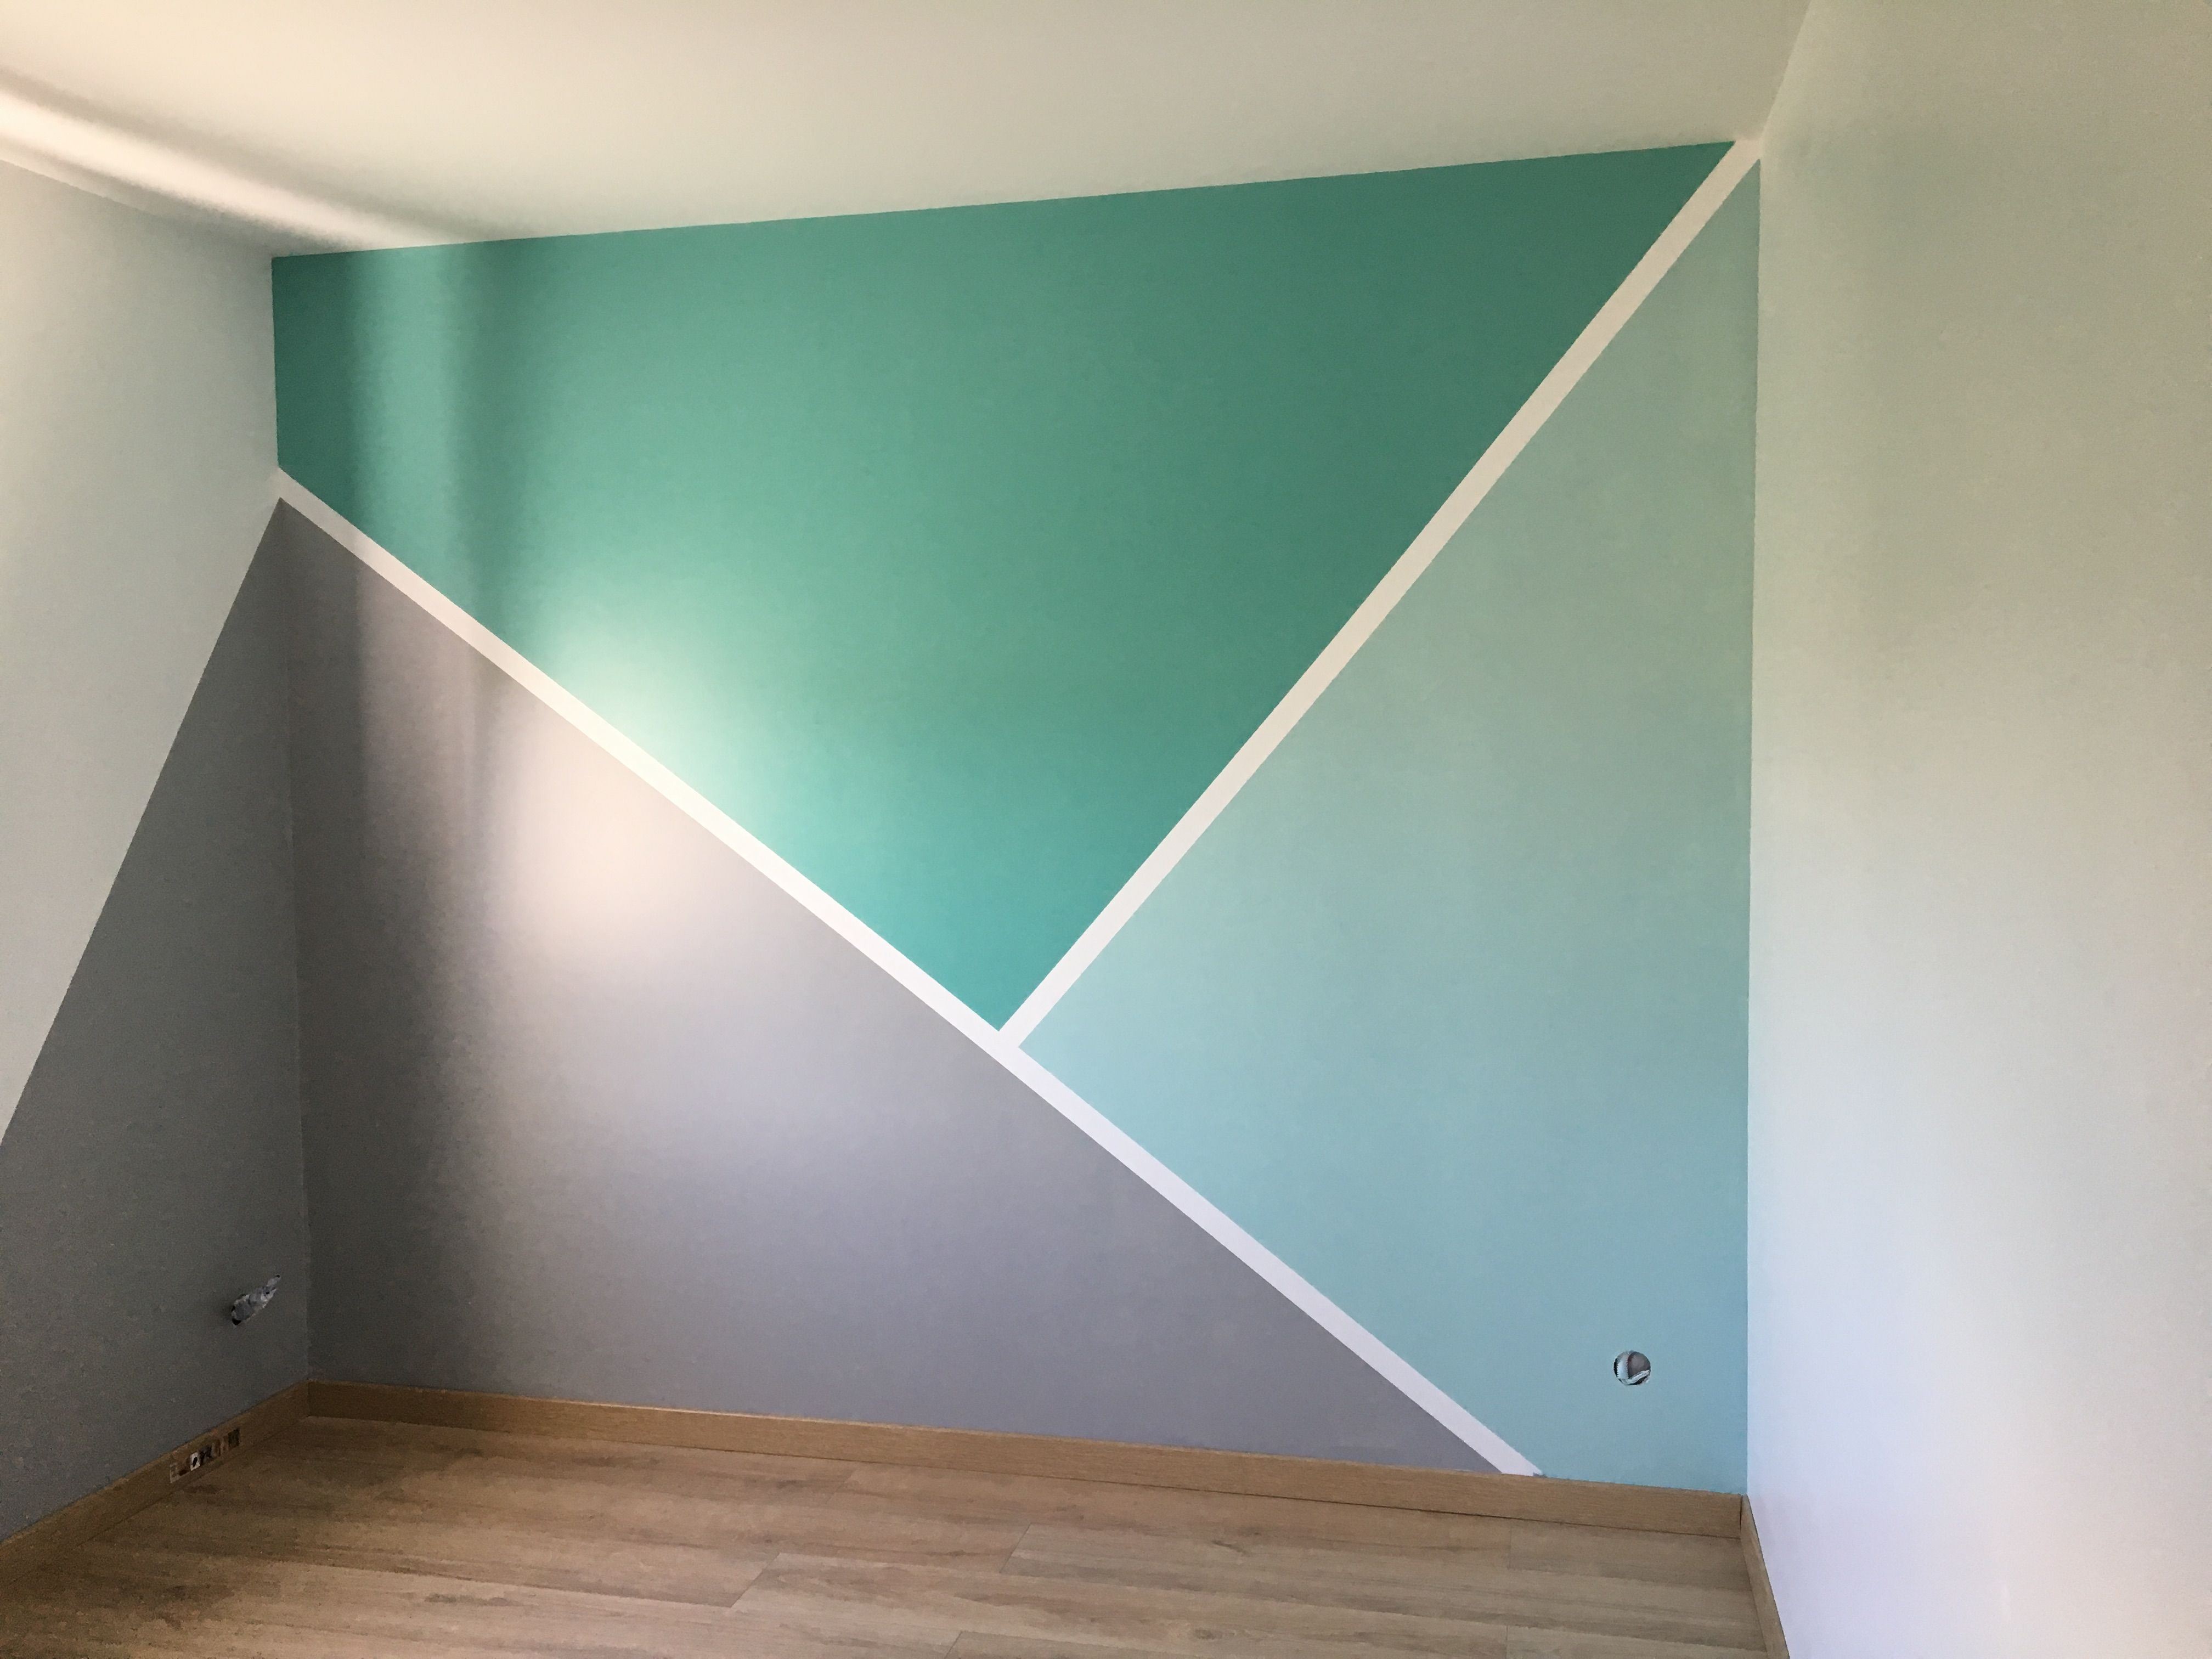 Chambre B B Peinture Triangle Abi Pinterest Room Bedrooms